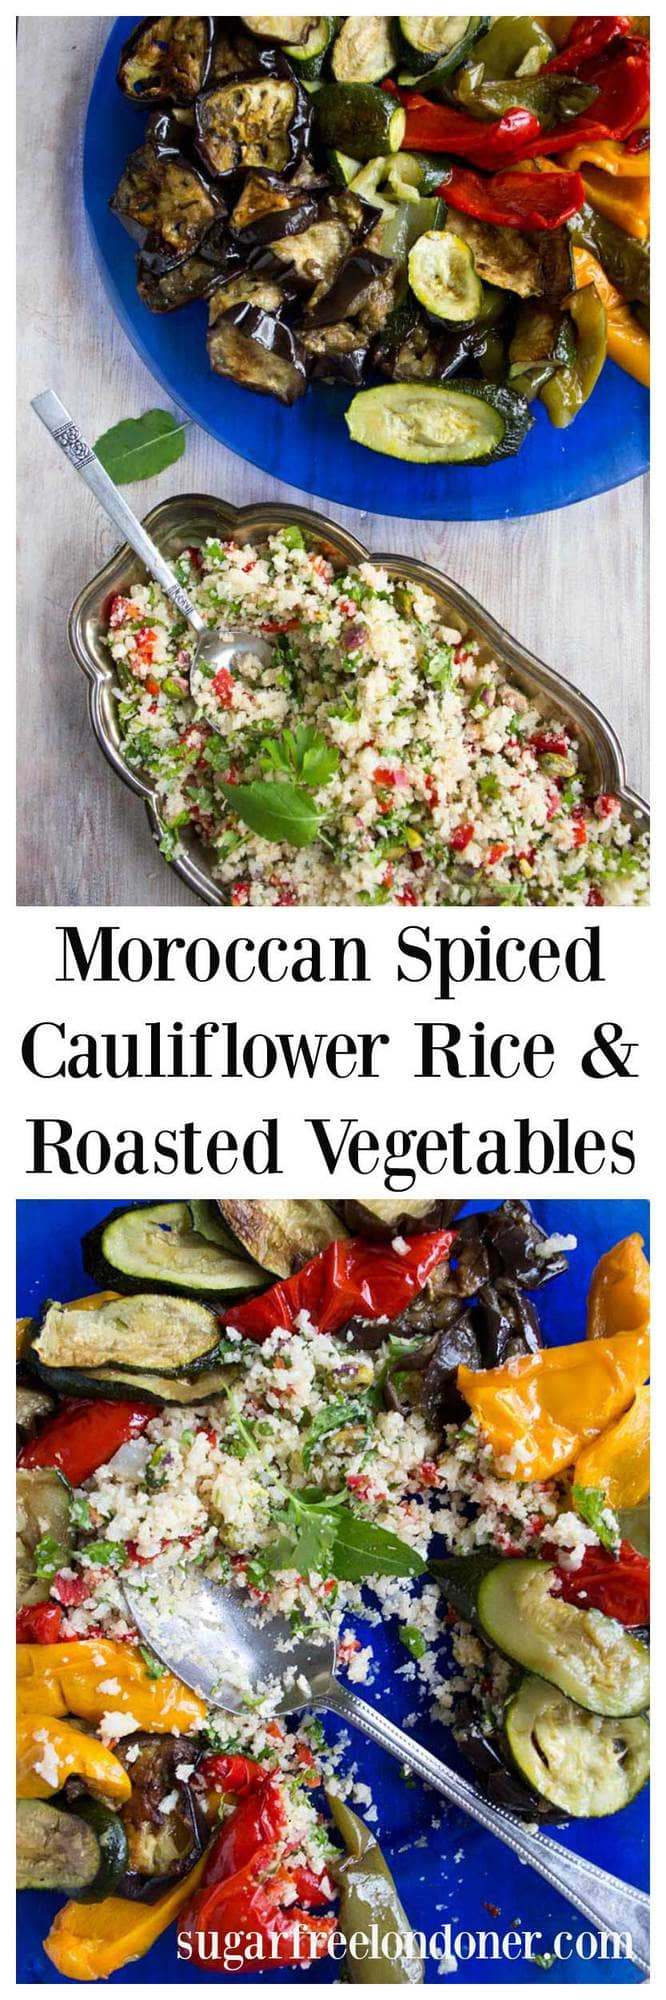 A light low carb lunch or dinner that is bursting with flavour. This Moroccan cauliflower rice with roasted vegetables is served with a yoghurt tahini dip. #cauliflowerrice